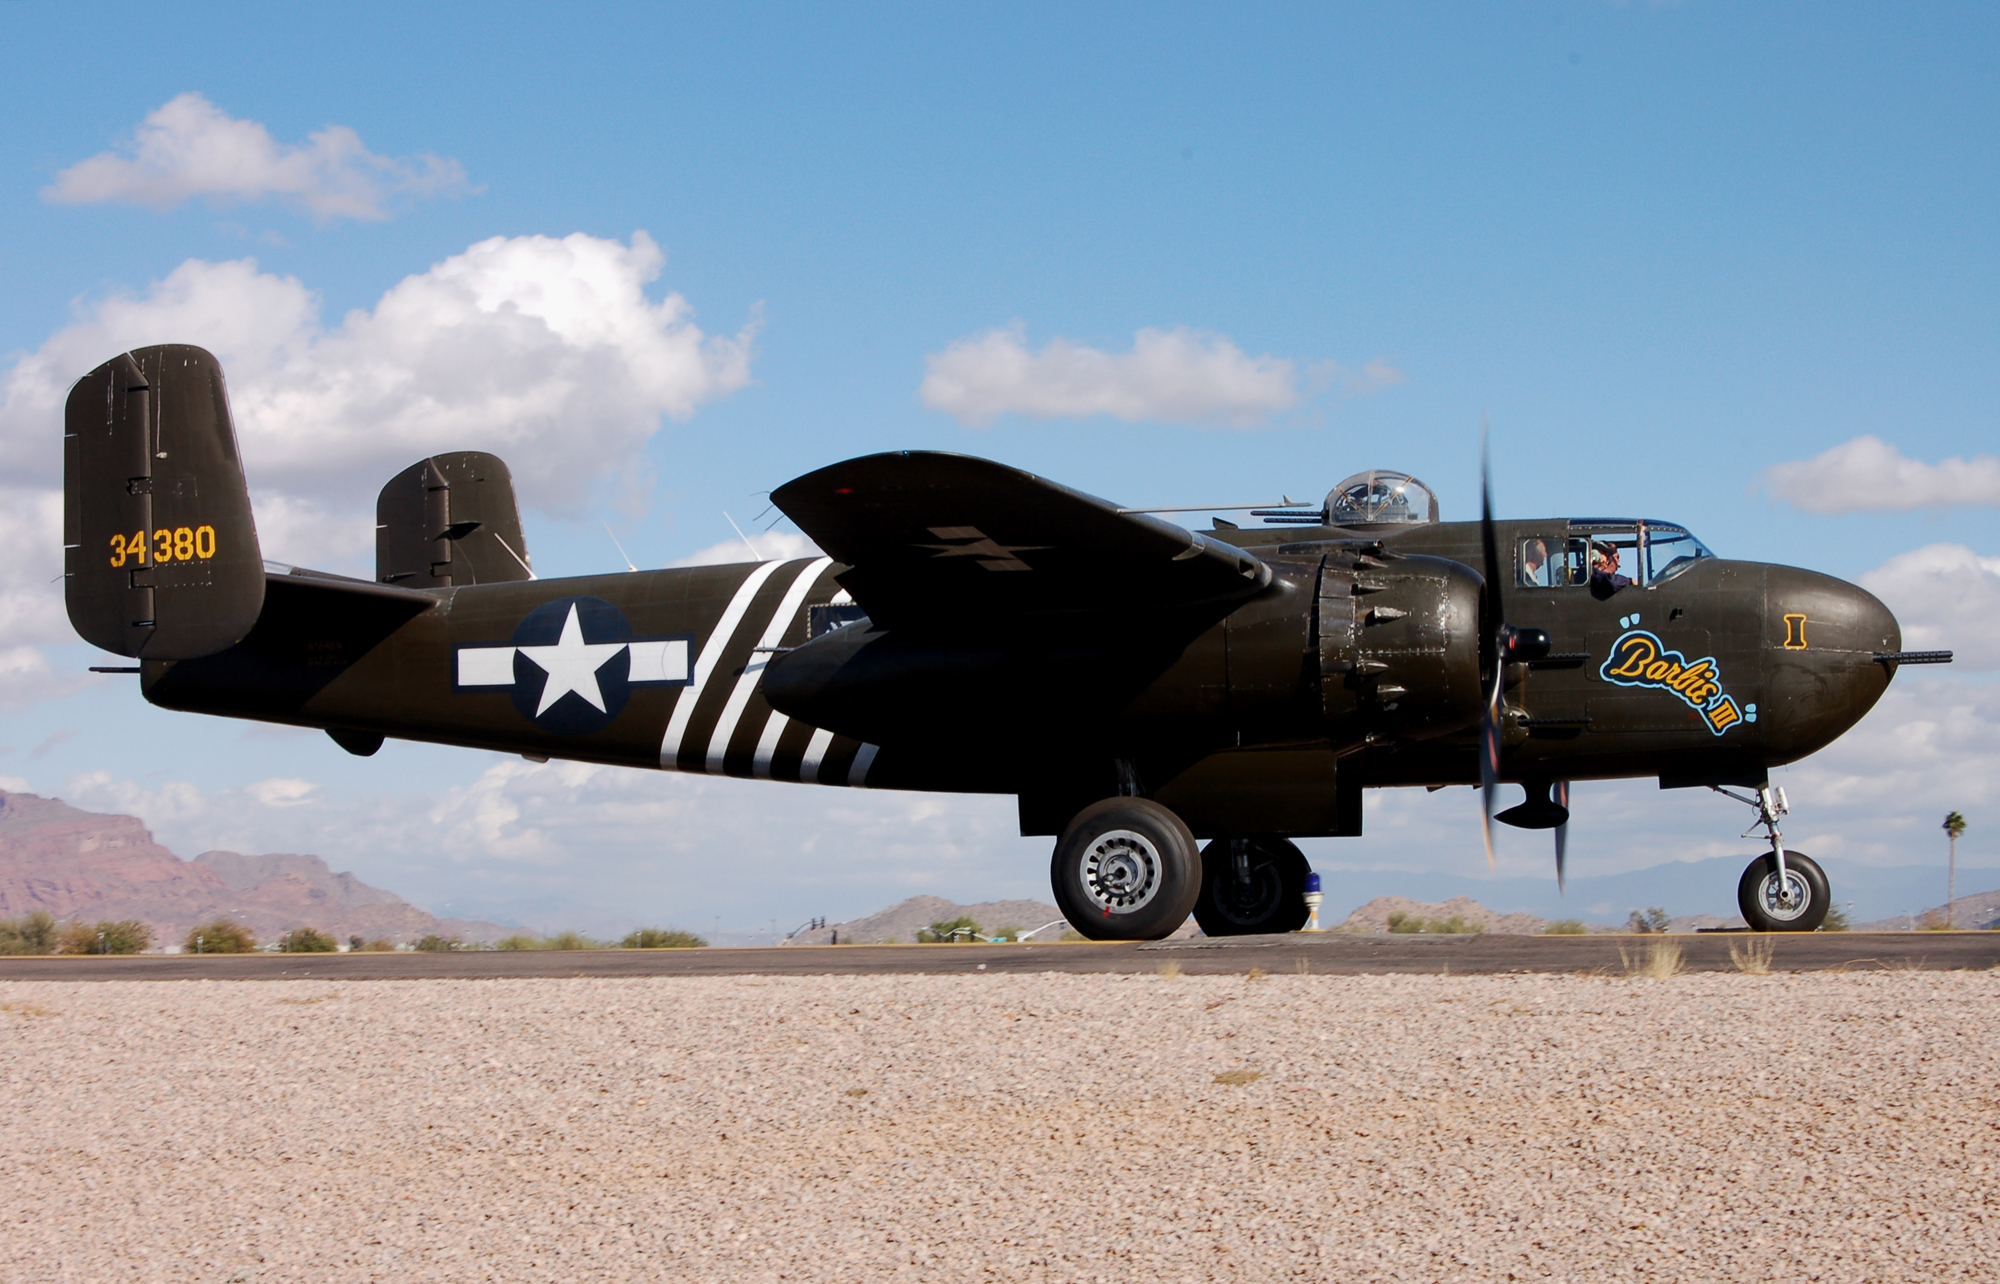 A Rare B-25H and an Aeronautical Themed Restaurant Fly in Perfect Harmony